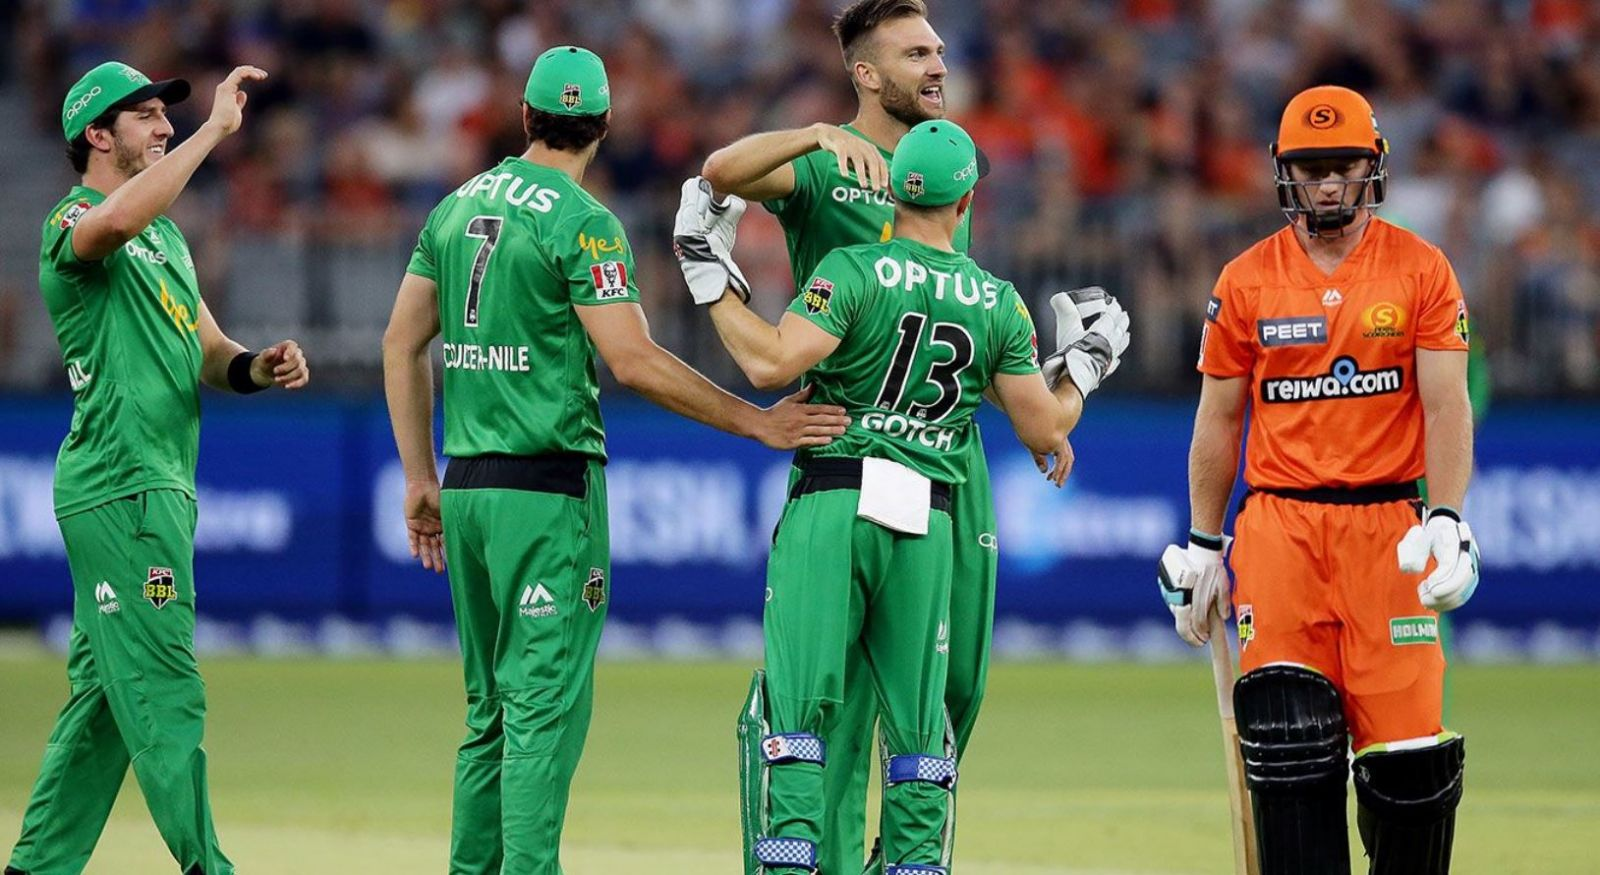 BBL09 Fantasy Tips: Stars vs Scorchers